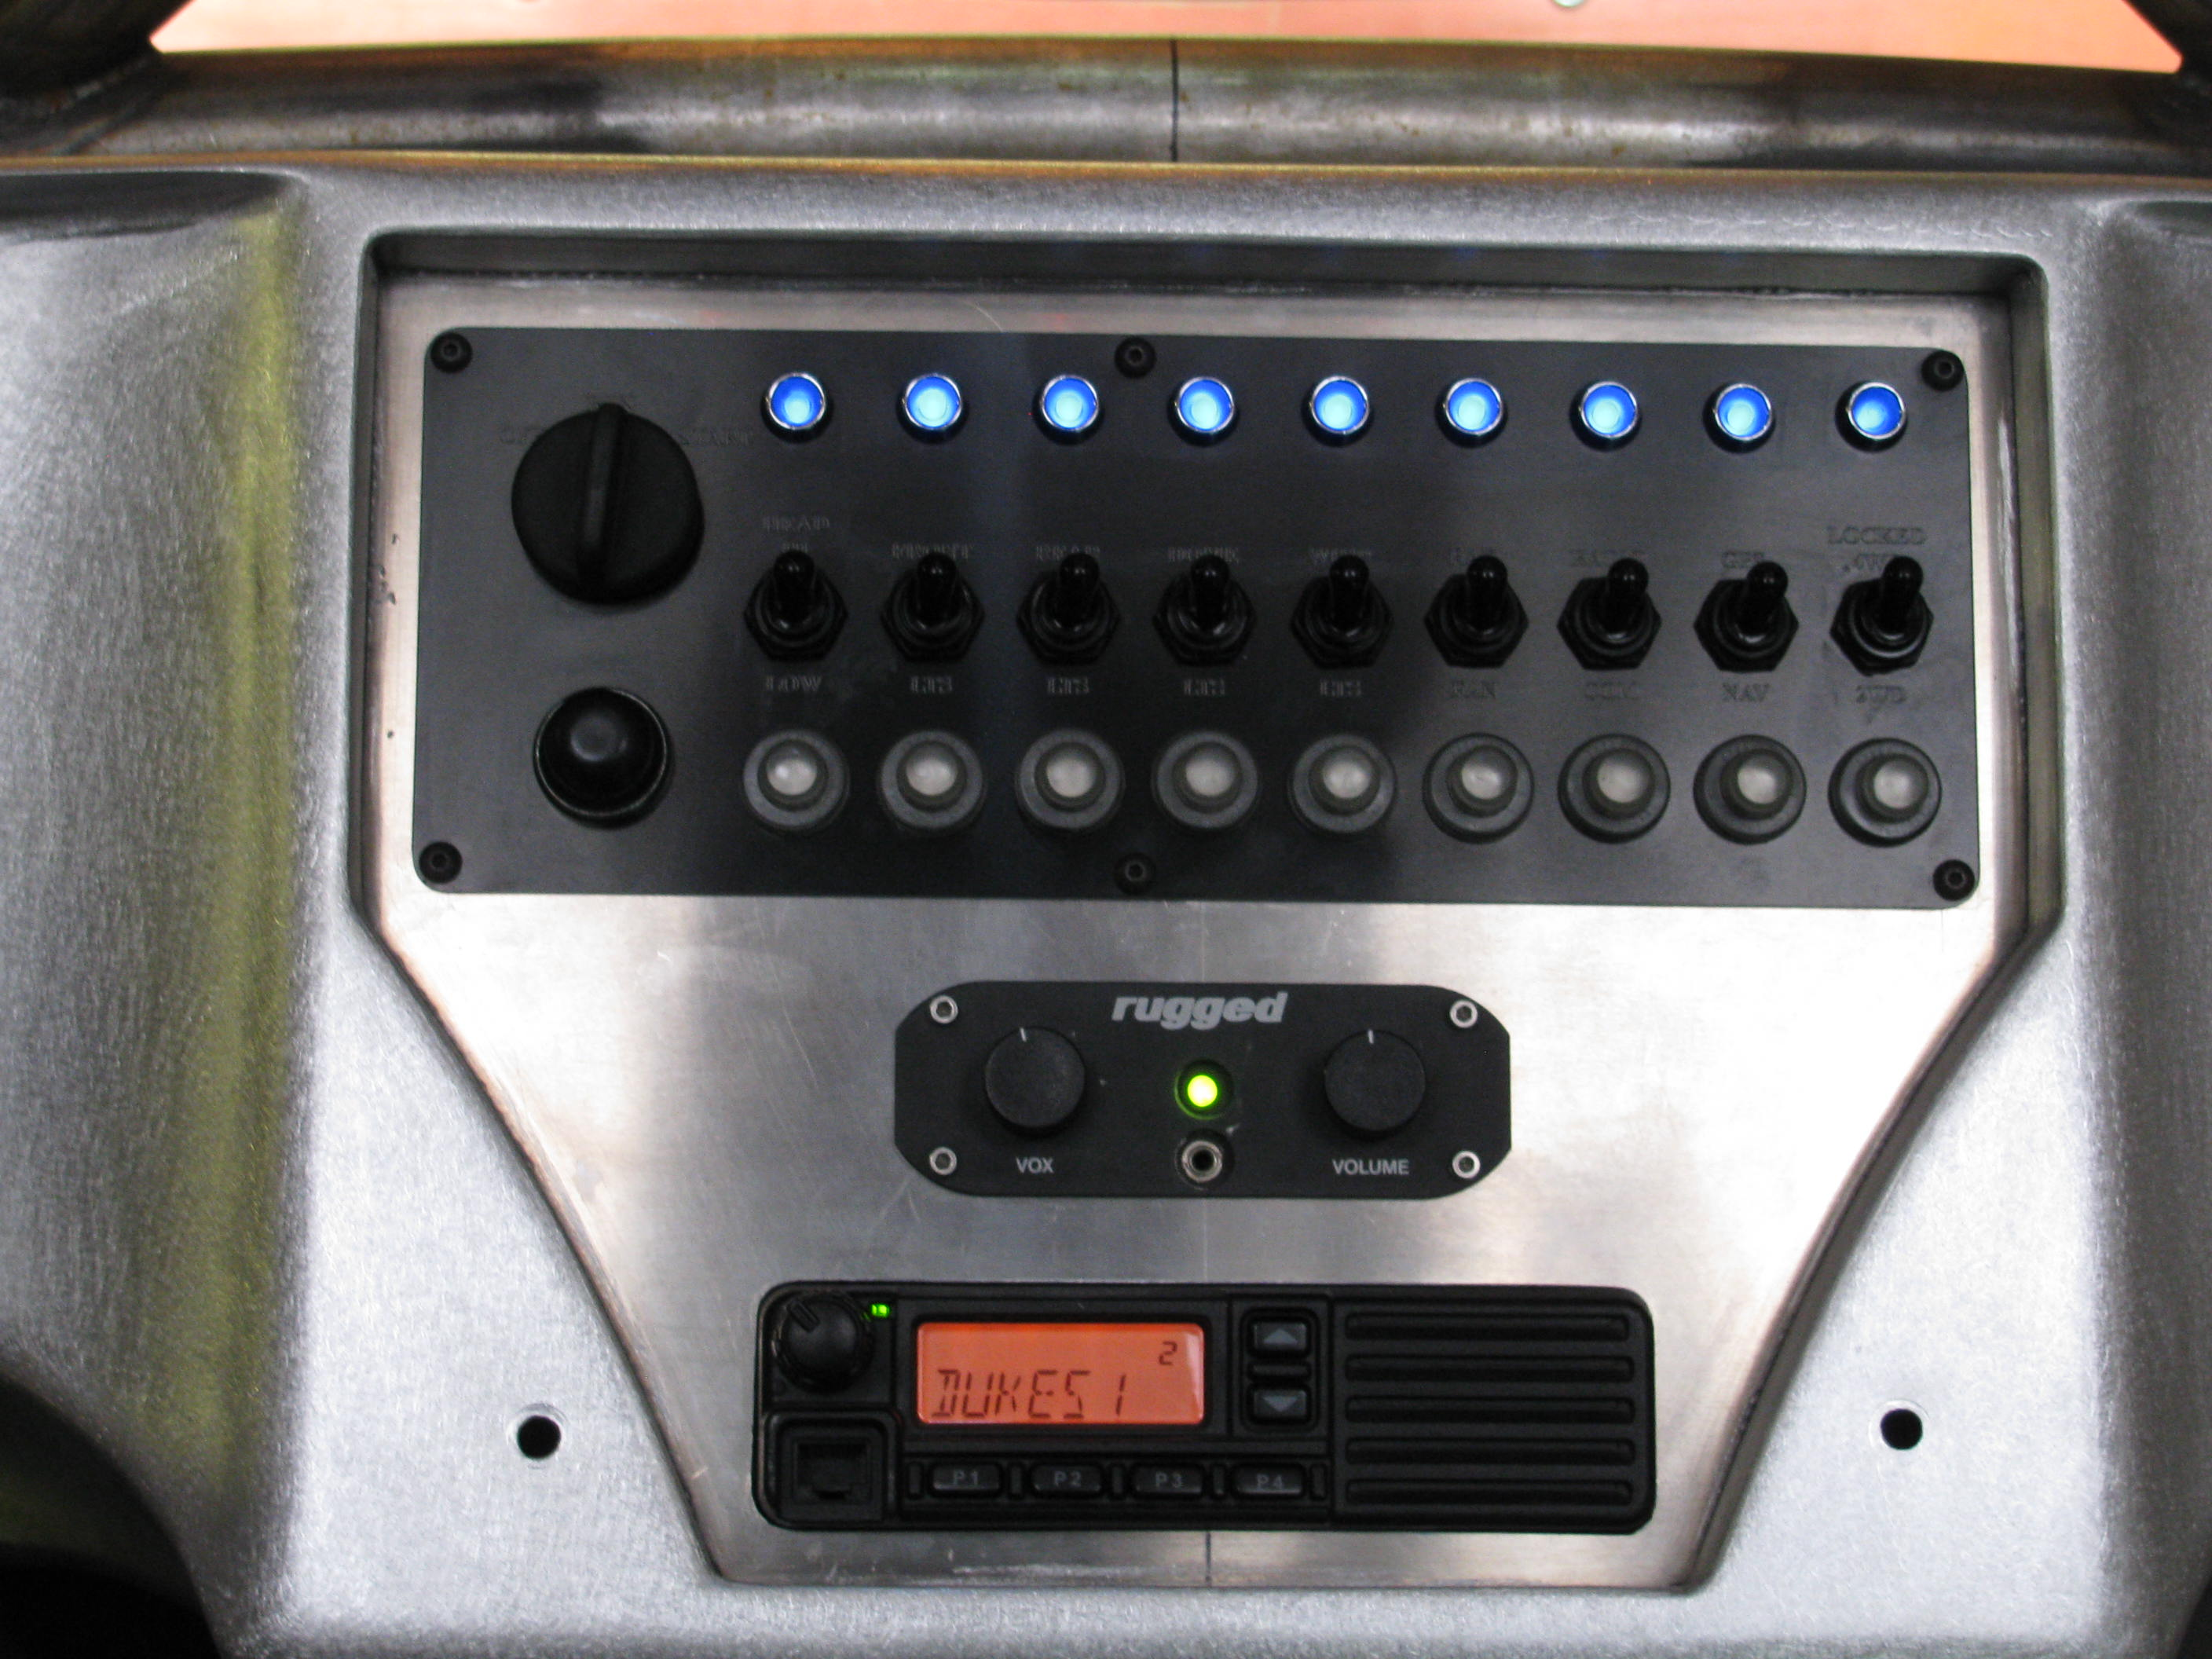 replaced x lock switch daystar switches this image has been resized click this bar to view the full image the original image is sized 713x345